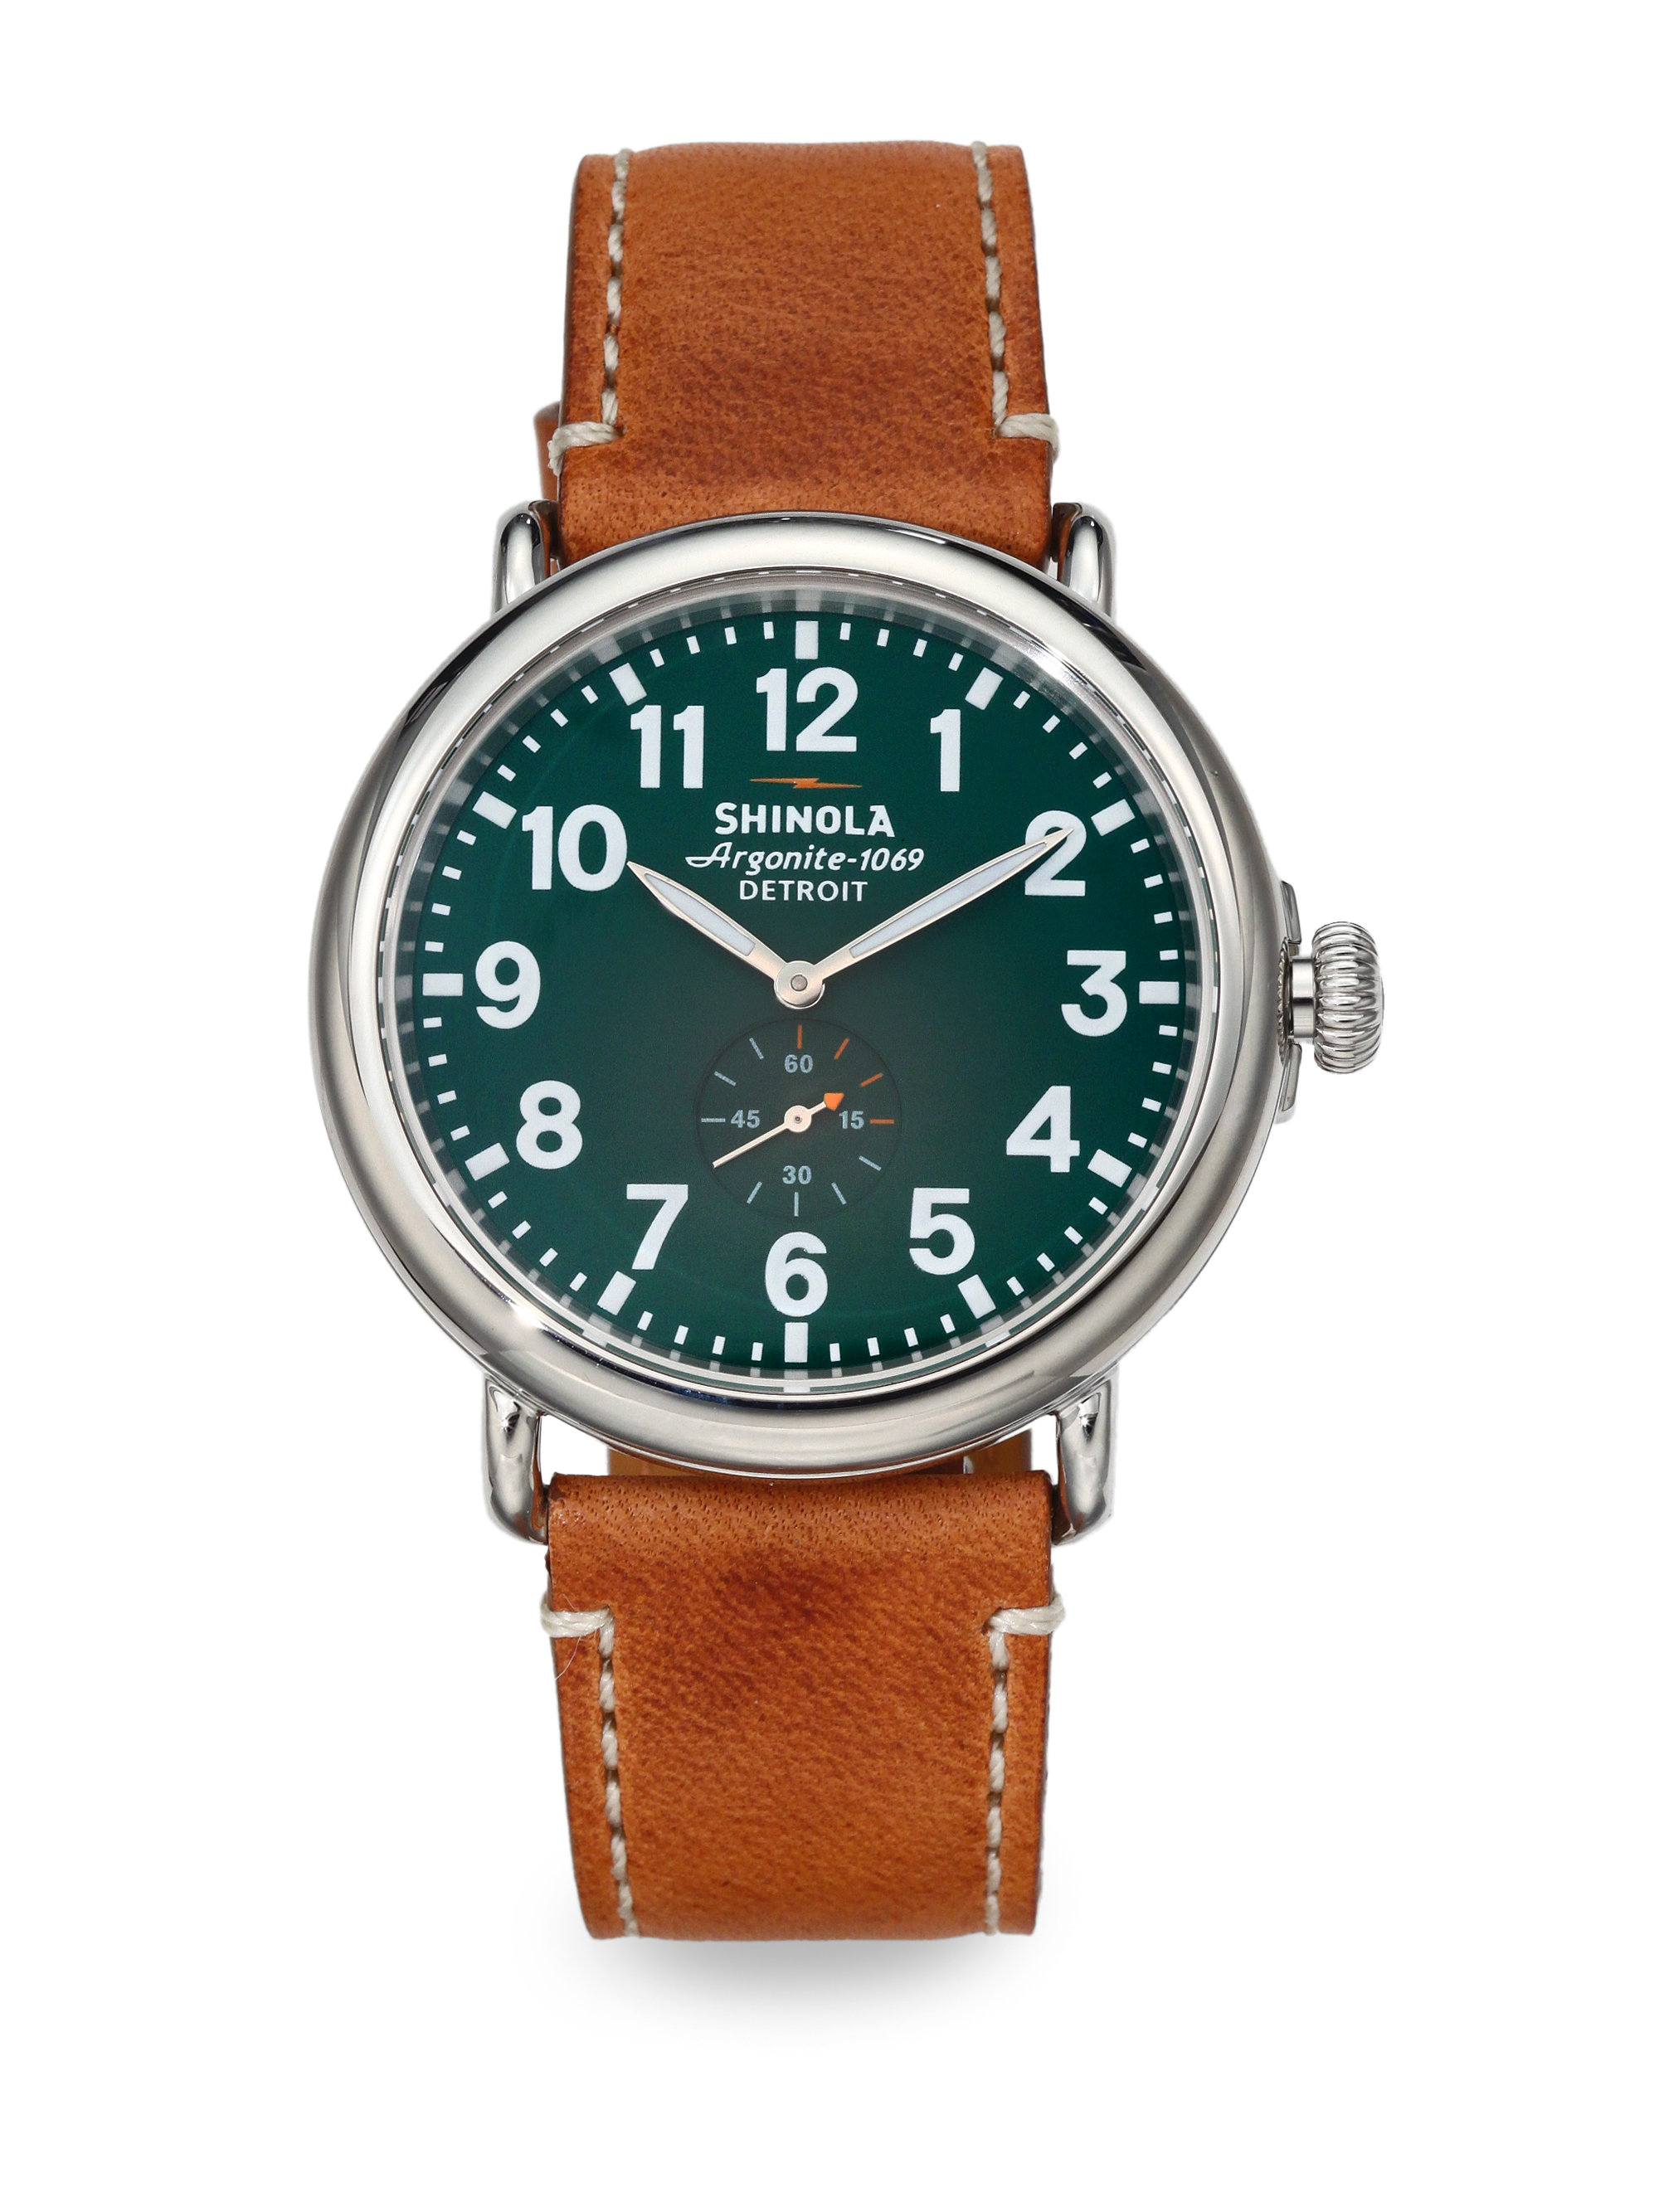 Buy Timex Men's T2H Easy Reader Black Leather Strap Watch and other Wrist Watches at qq9y3xuhbd722.gq Our wide selection is eligible for free shipping and free returns.